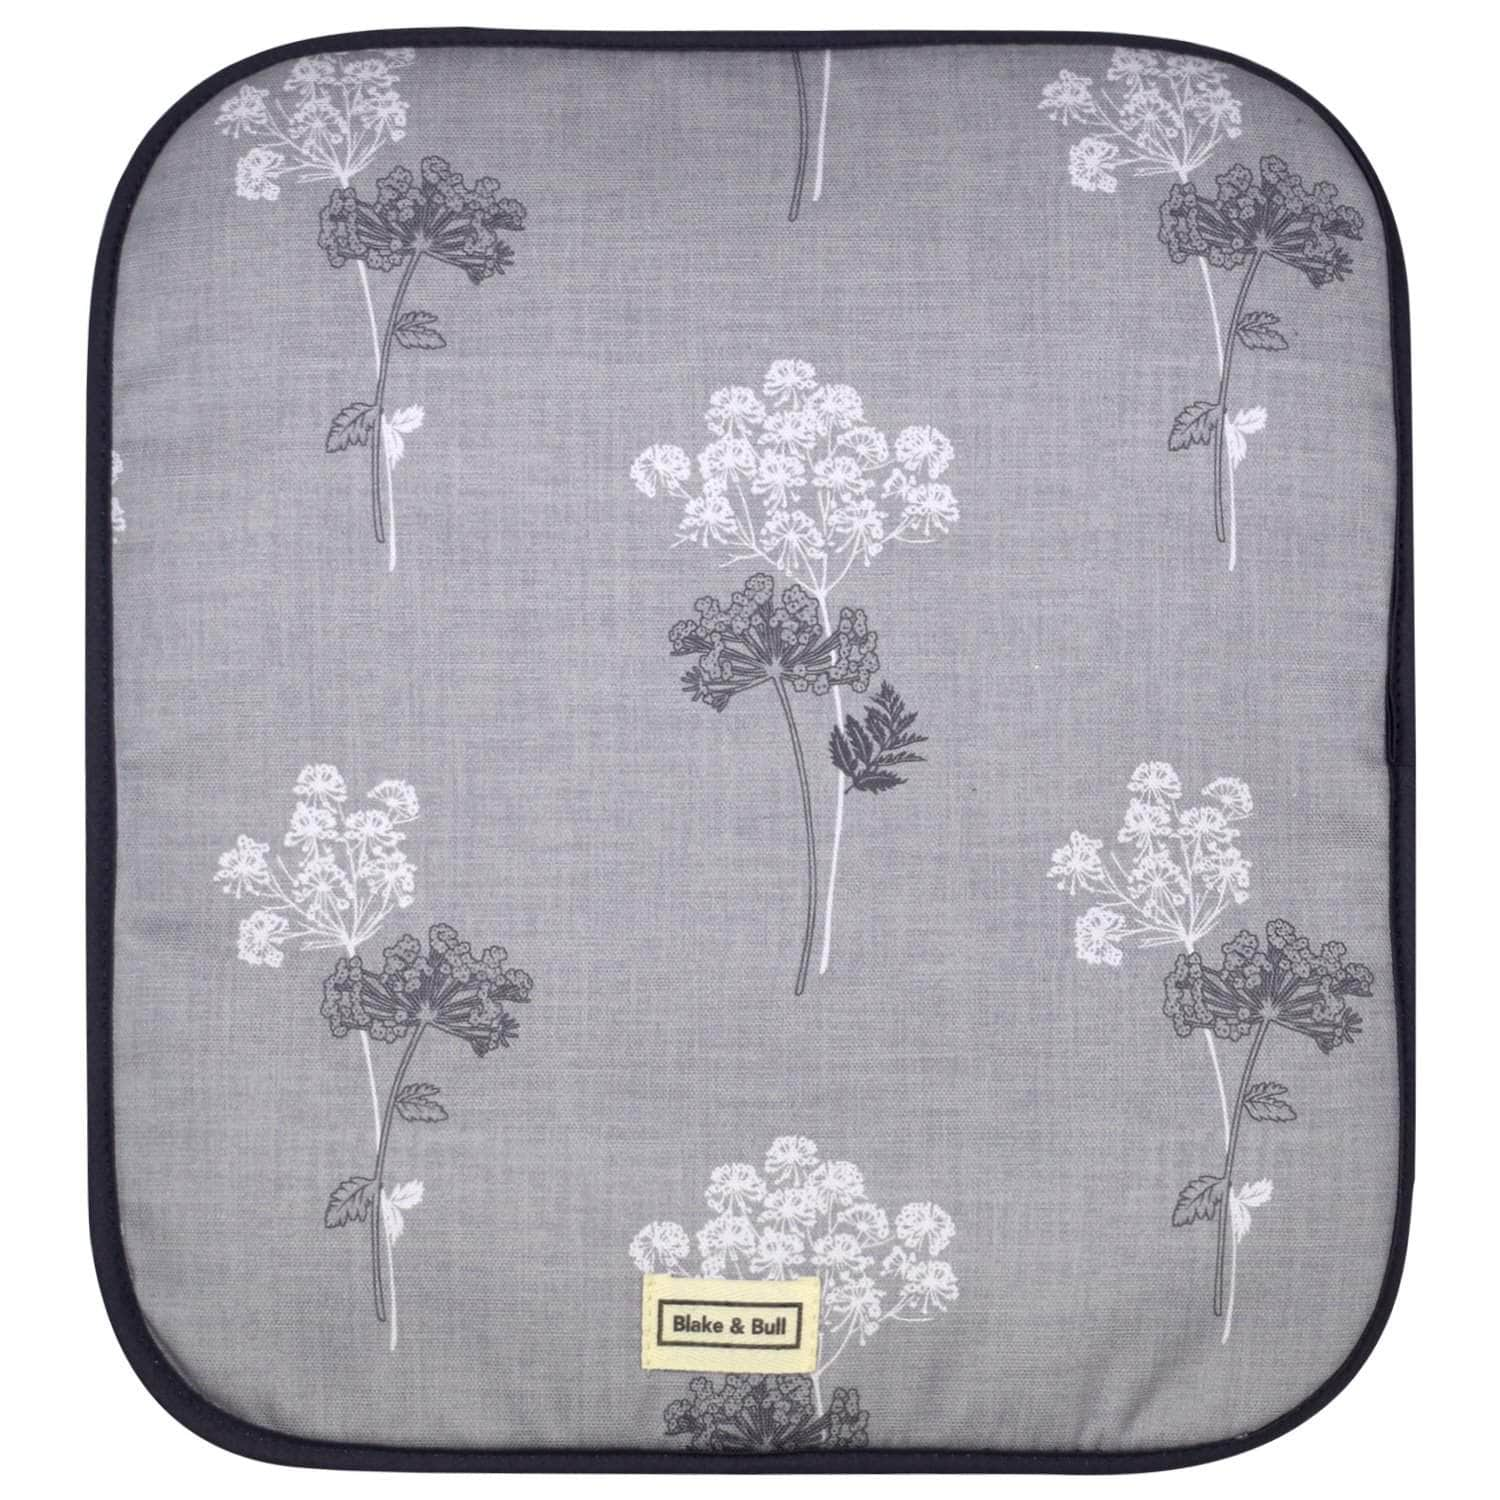 *Not quite perfect* Warming plate cover for use with Aga range cookers - 'Cow Parsley'